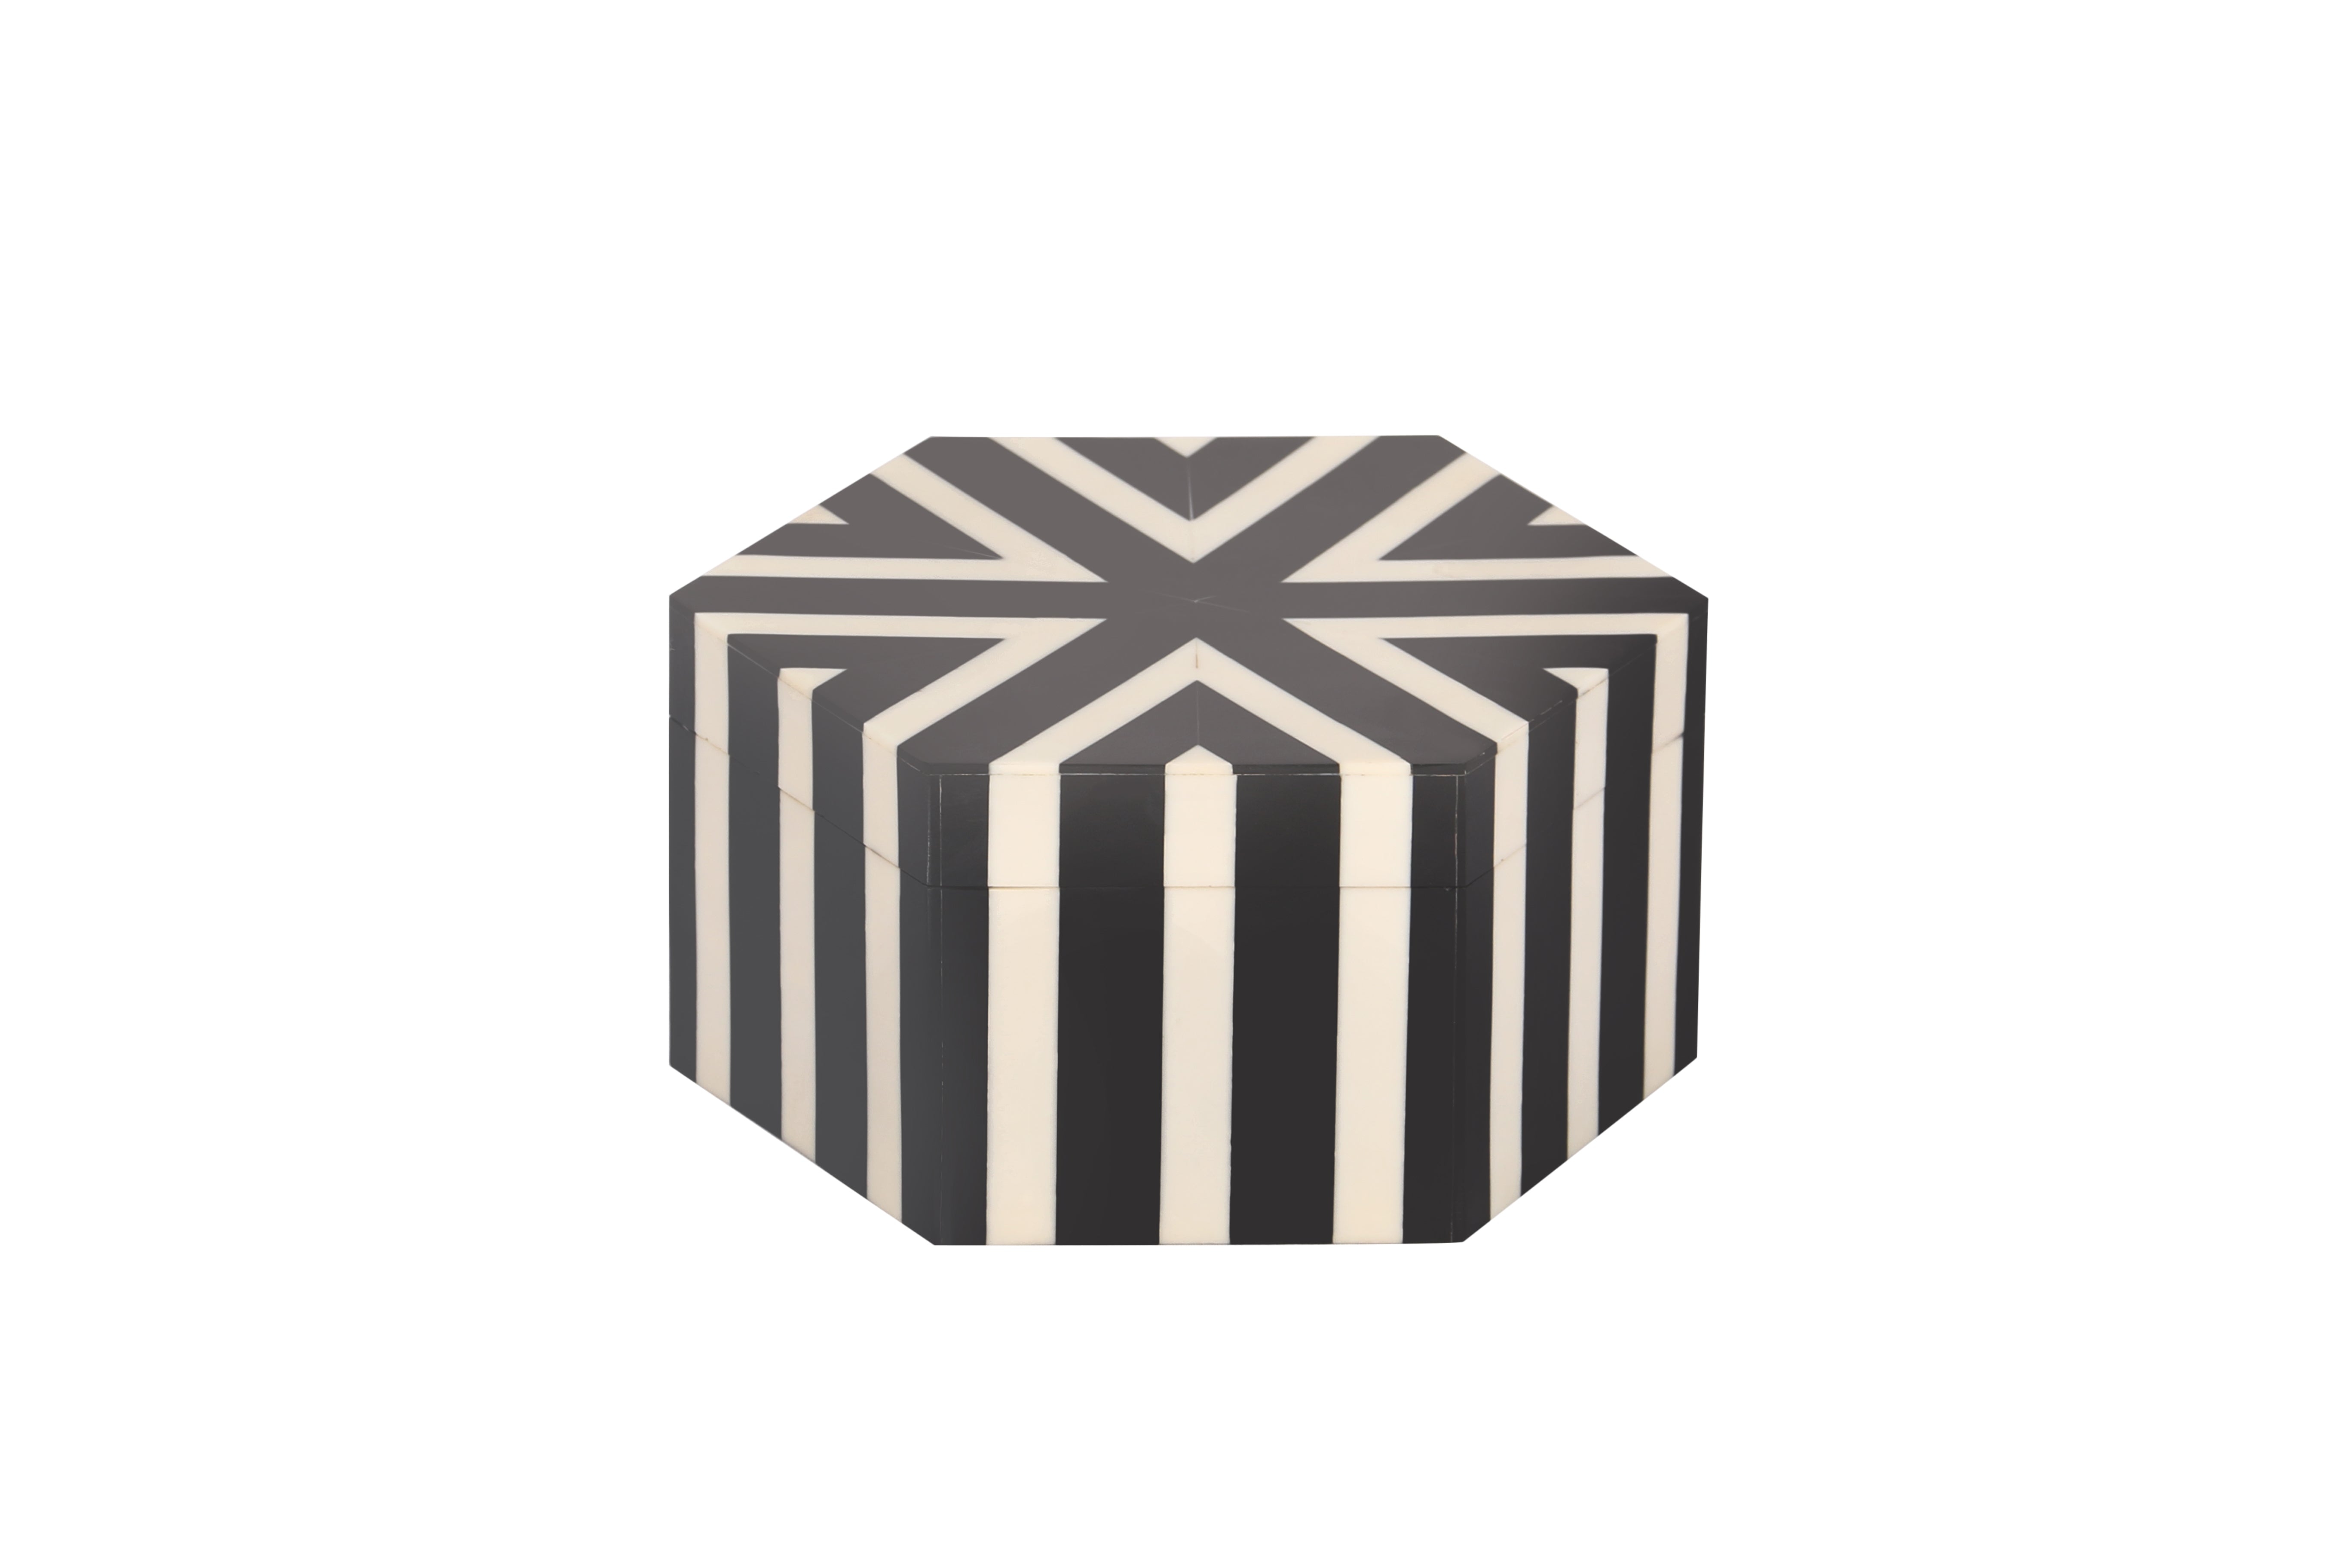 Monochrome Octagonal Resin Inlay Handcrafted Box Set